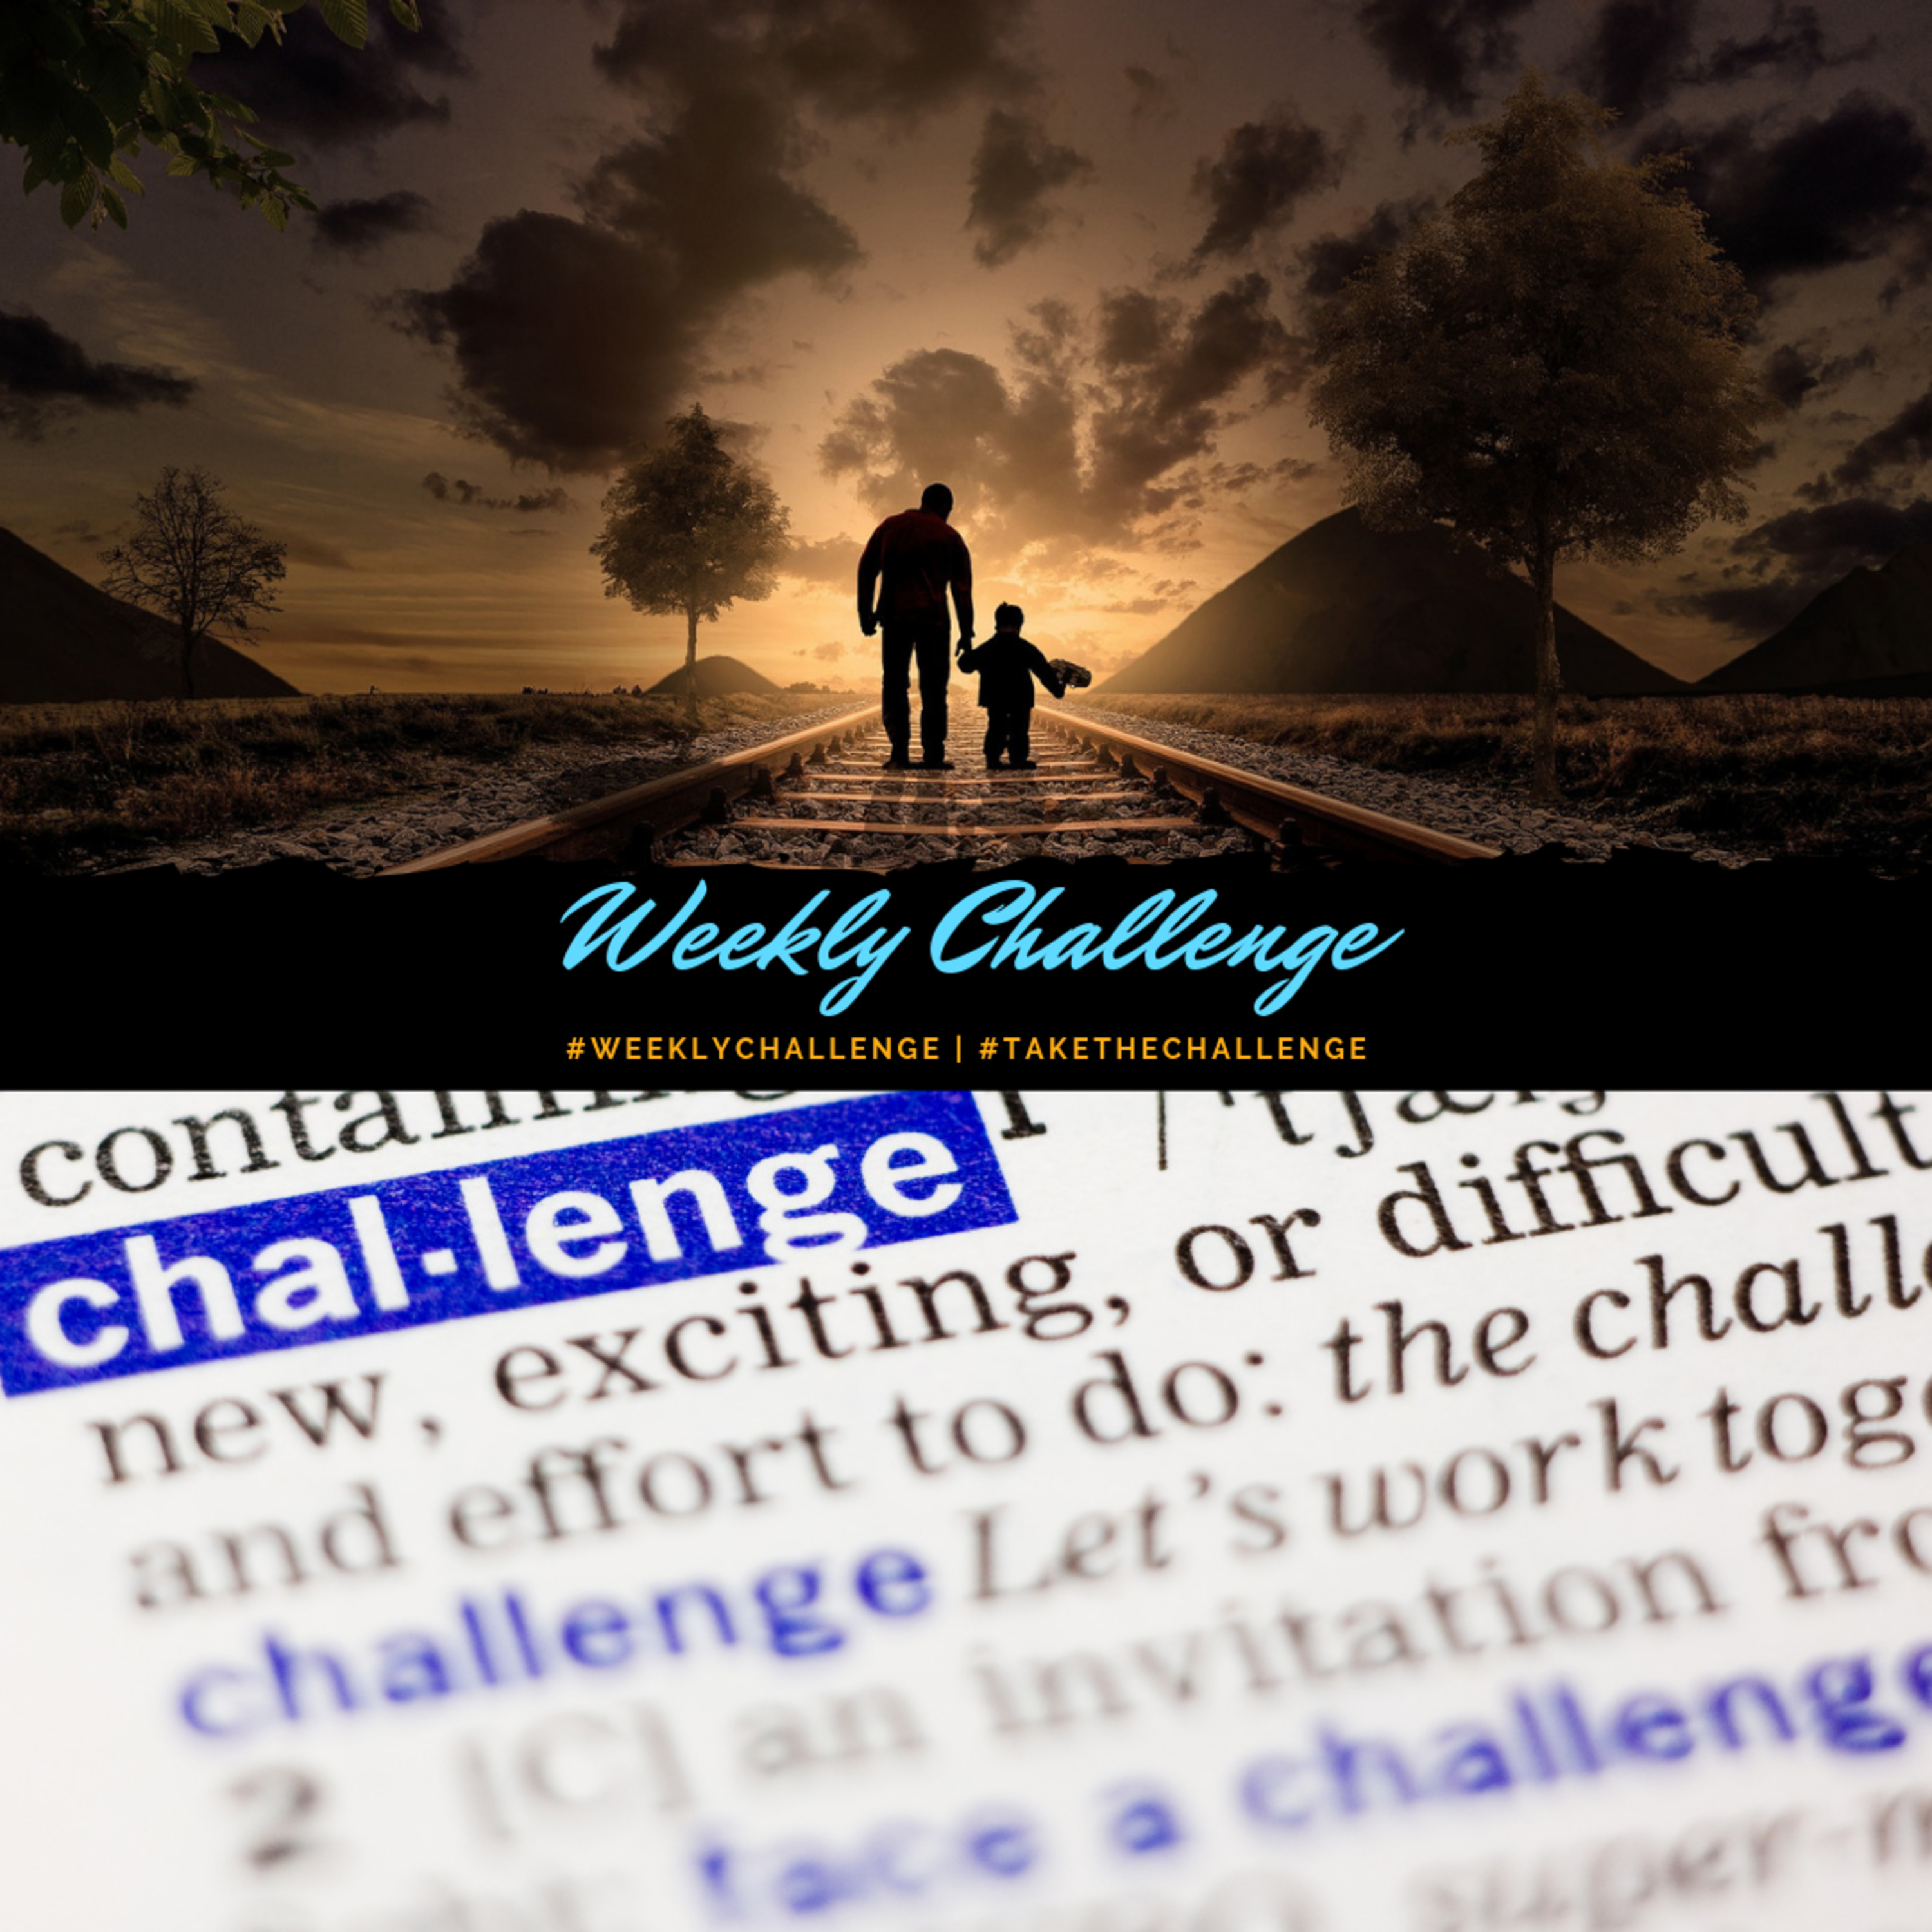 #WeeklyChallenge | From Ep 53 Dismissing Ideas